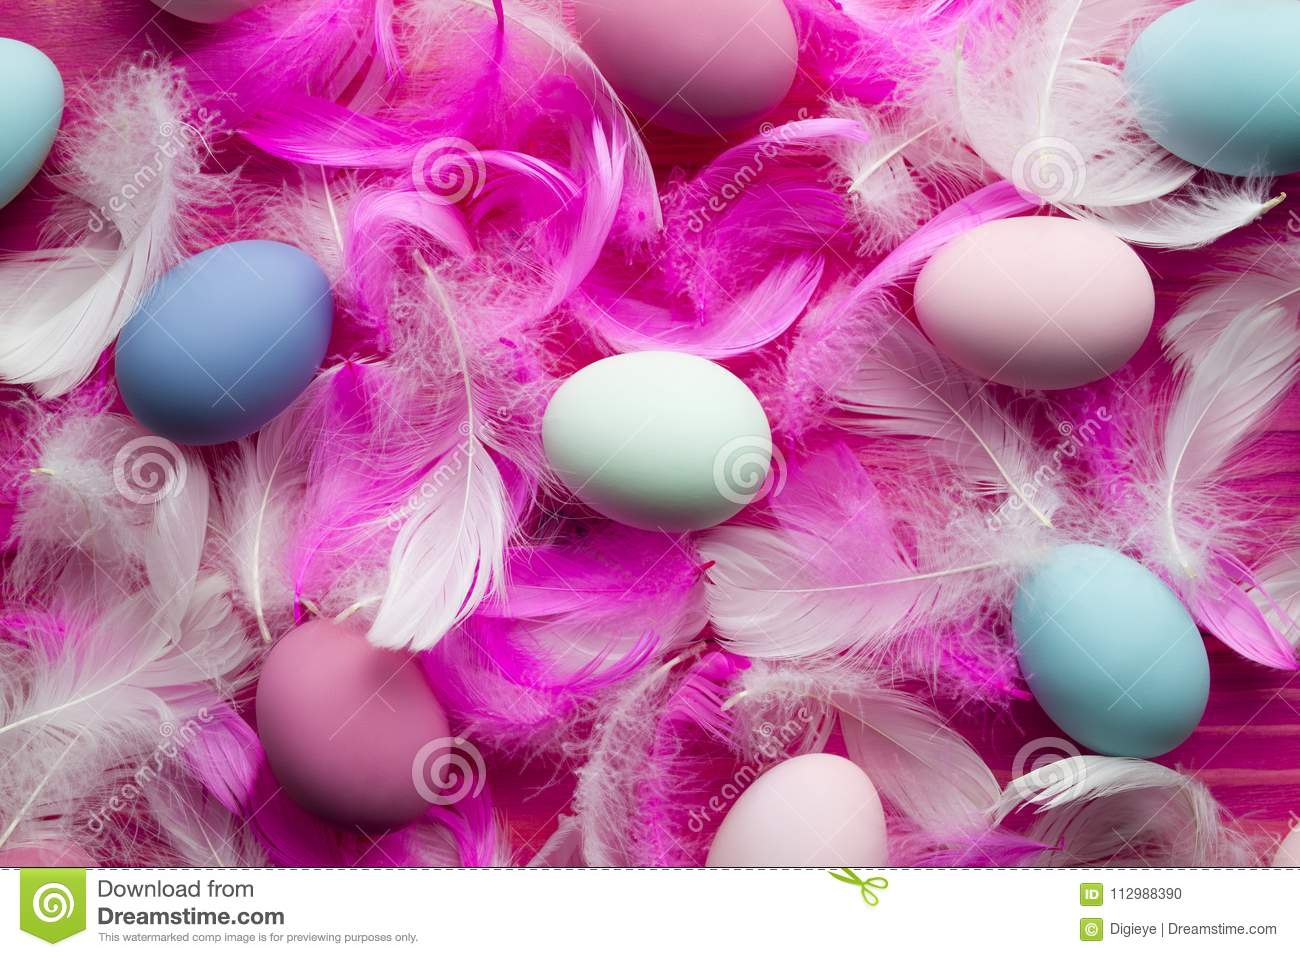 White and pink feathers and many colored Easter eggs